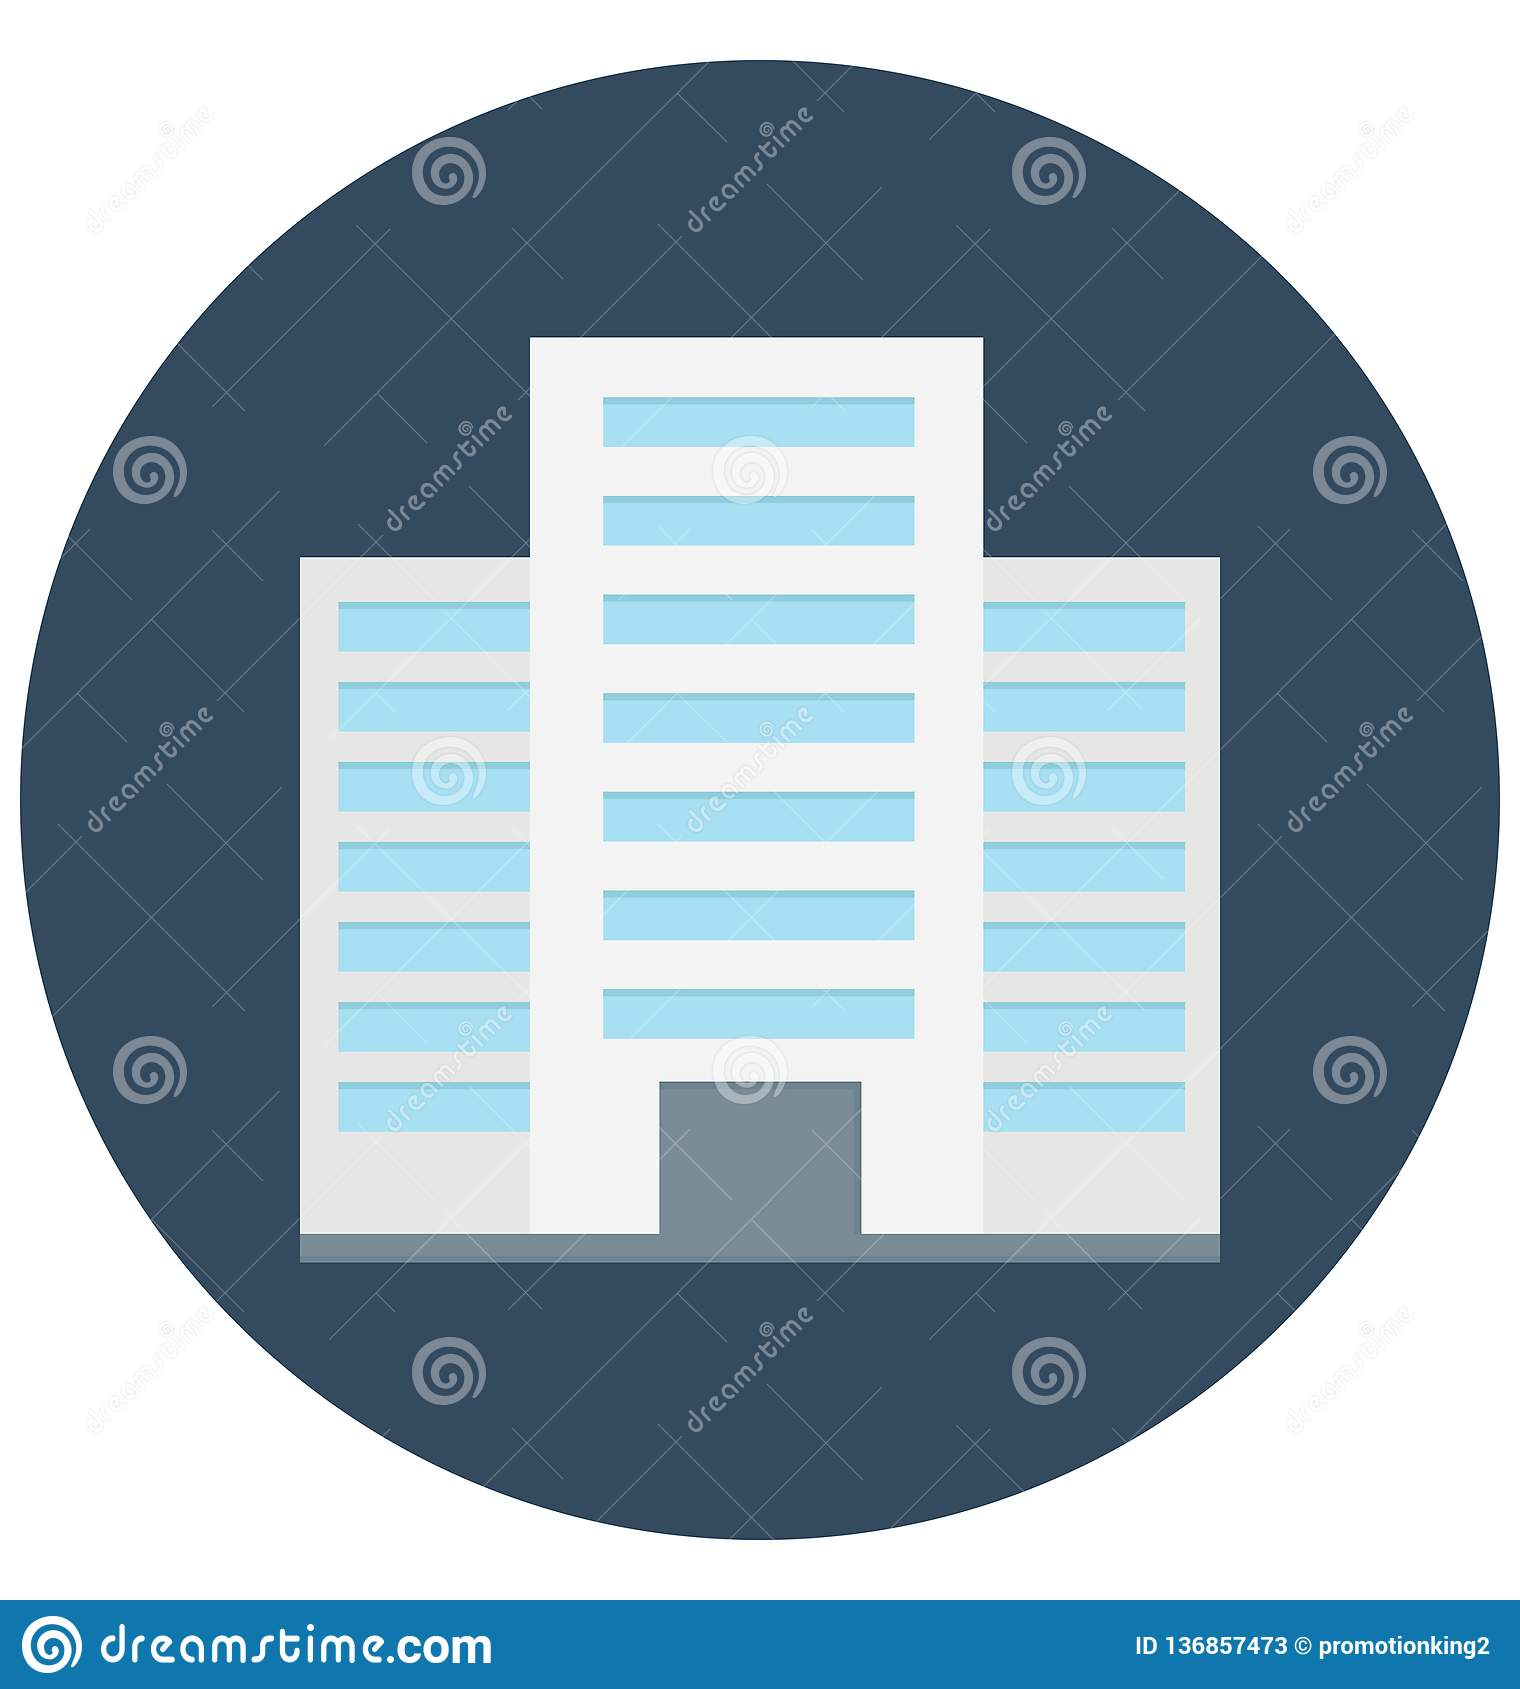 Commercial Building Color Vector icon which can be easily modified or edit